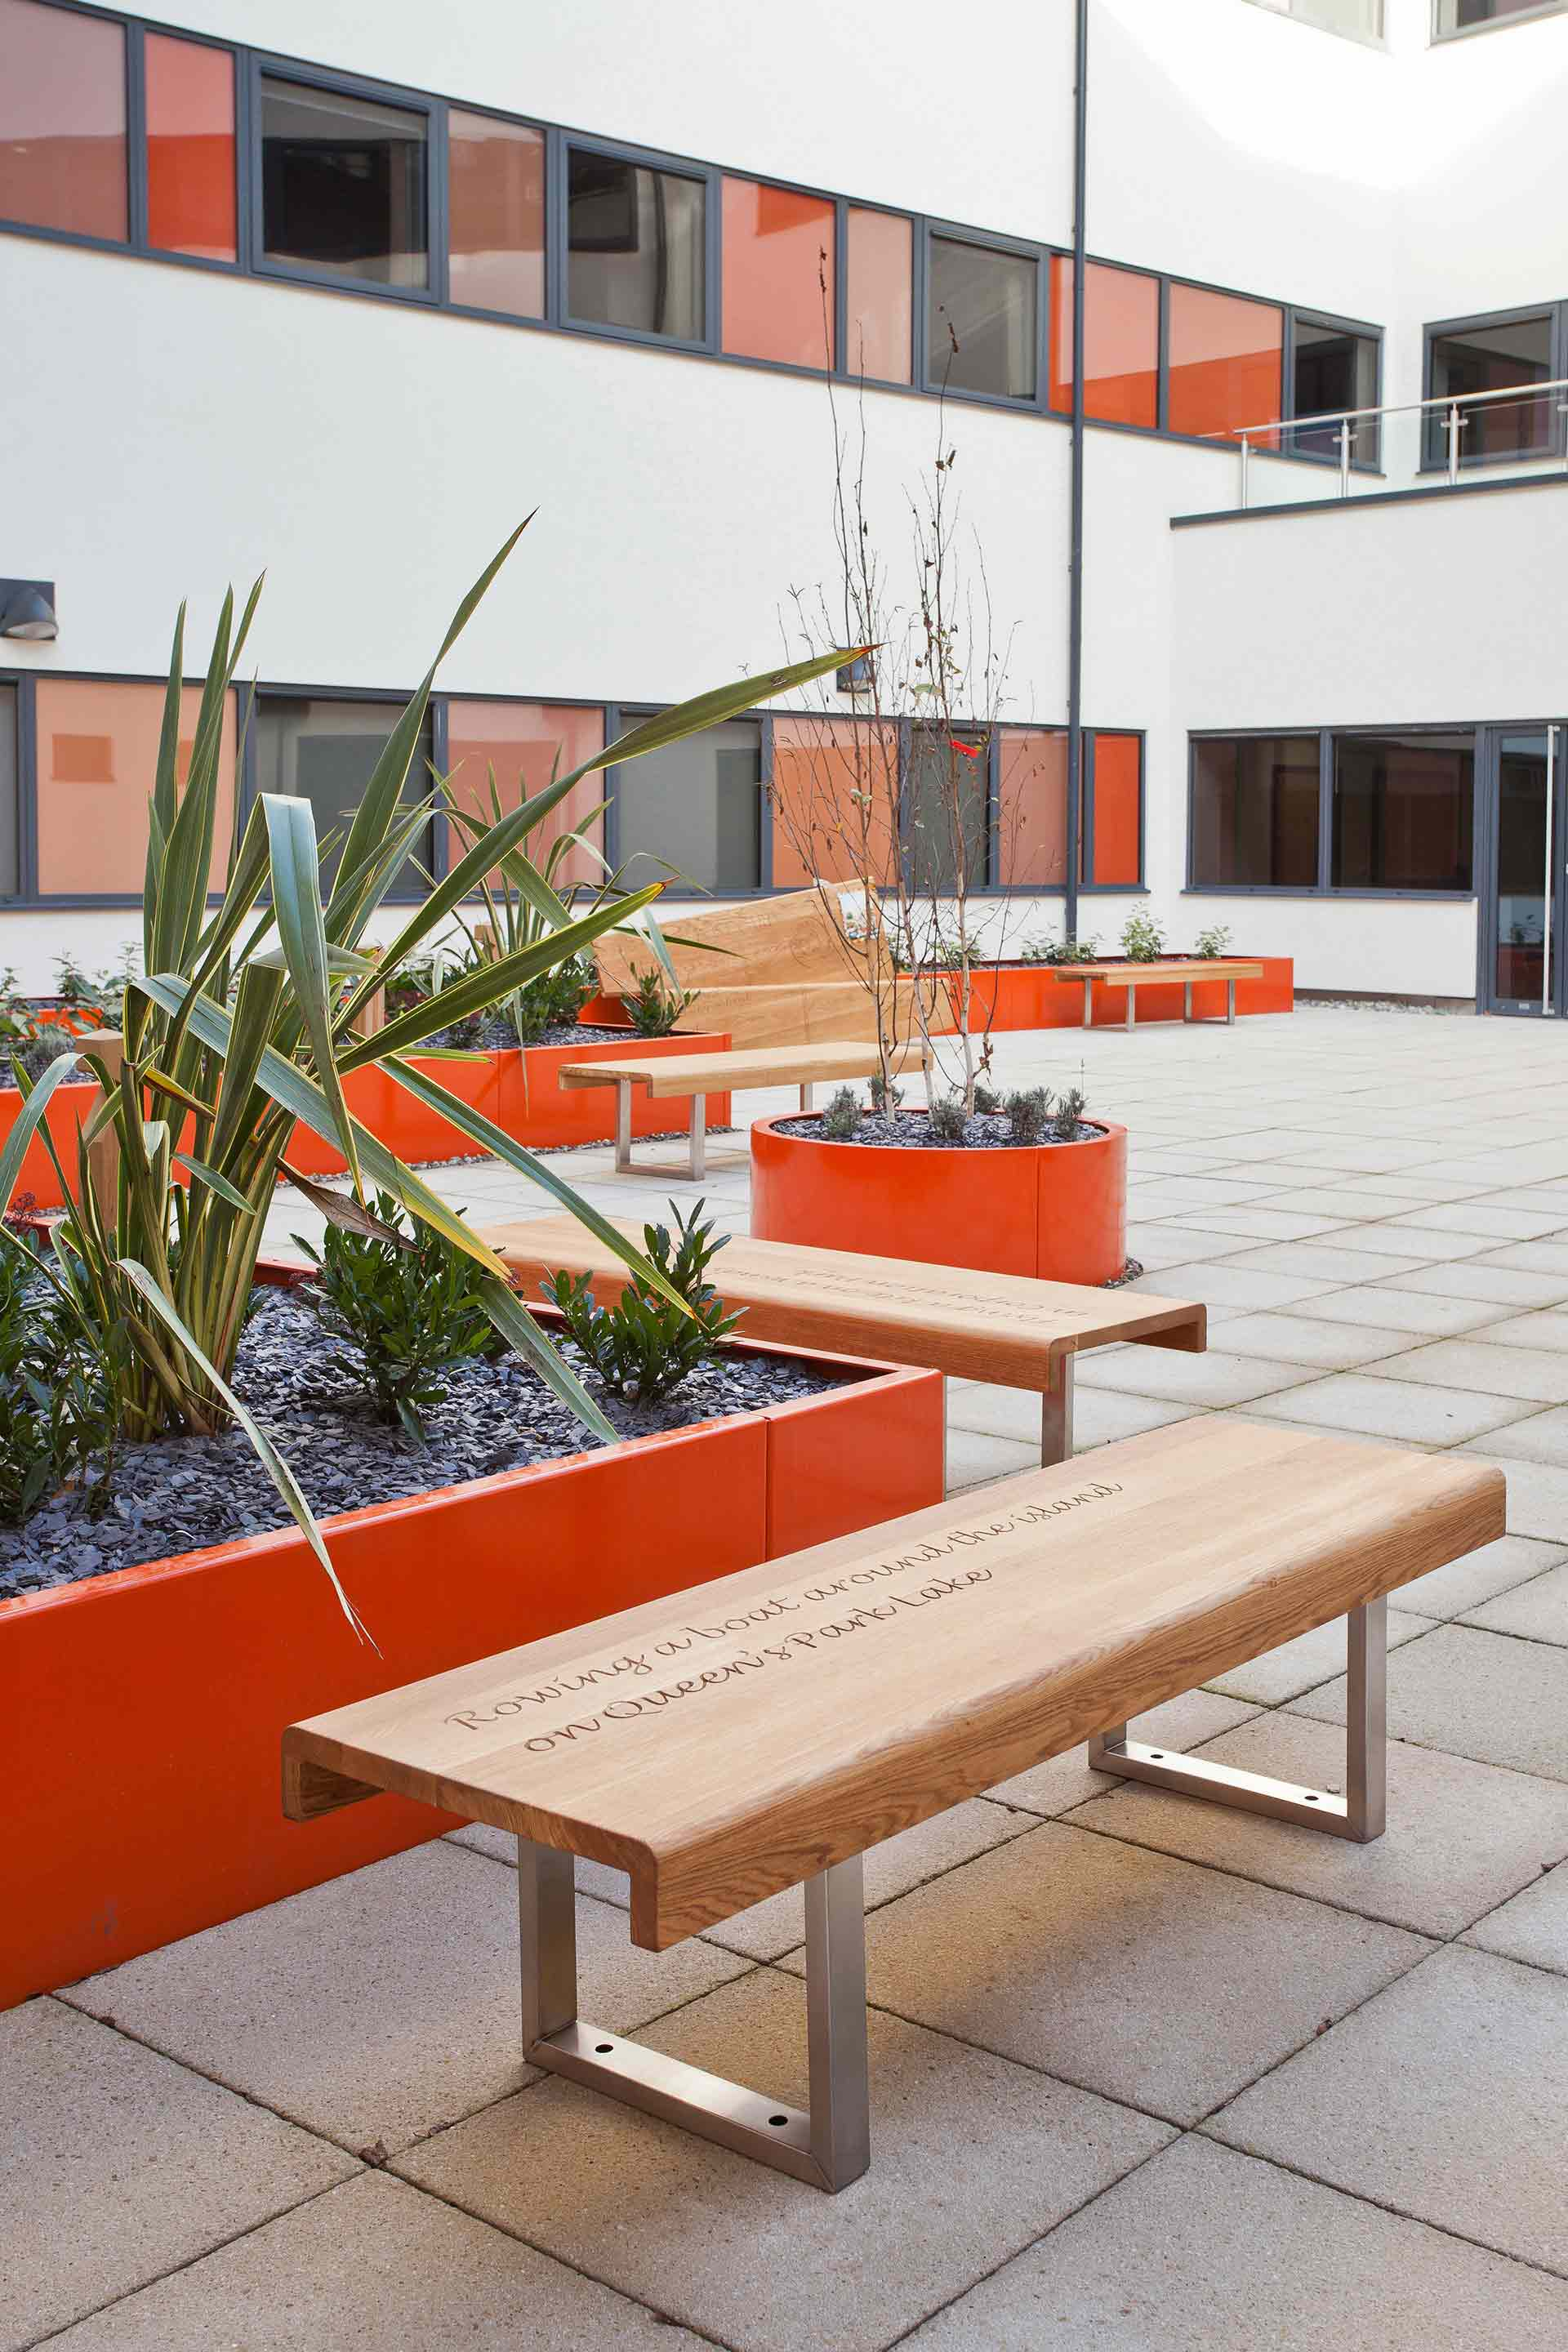 Timber top bench with hand engraving in NHS courtyard